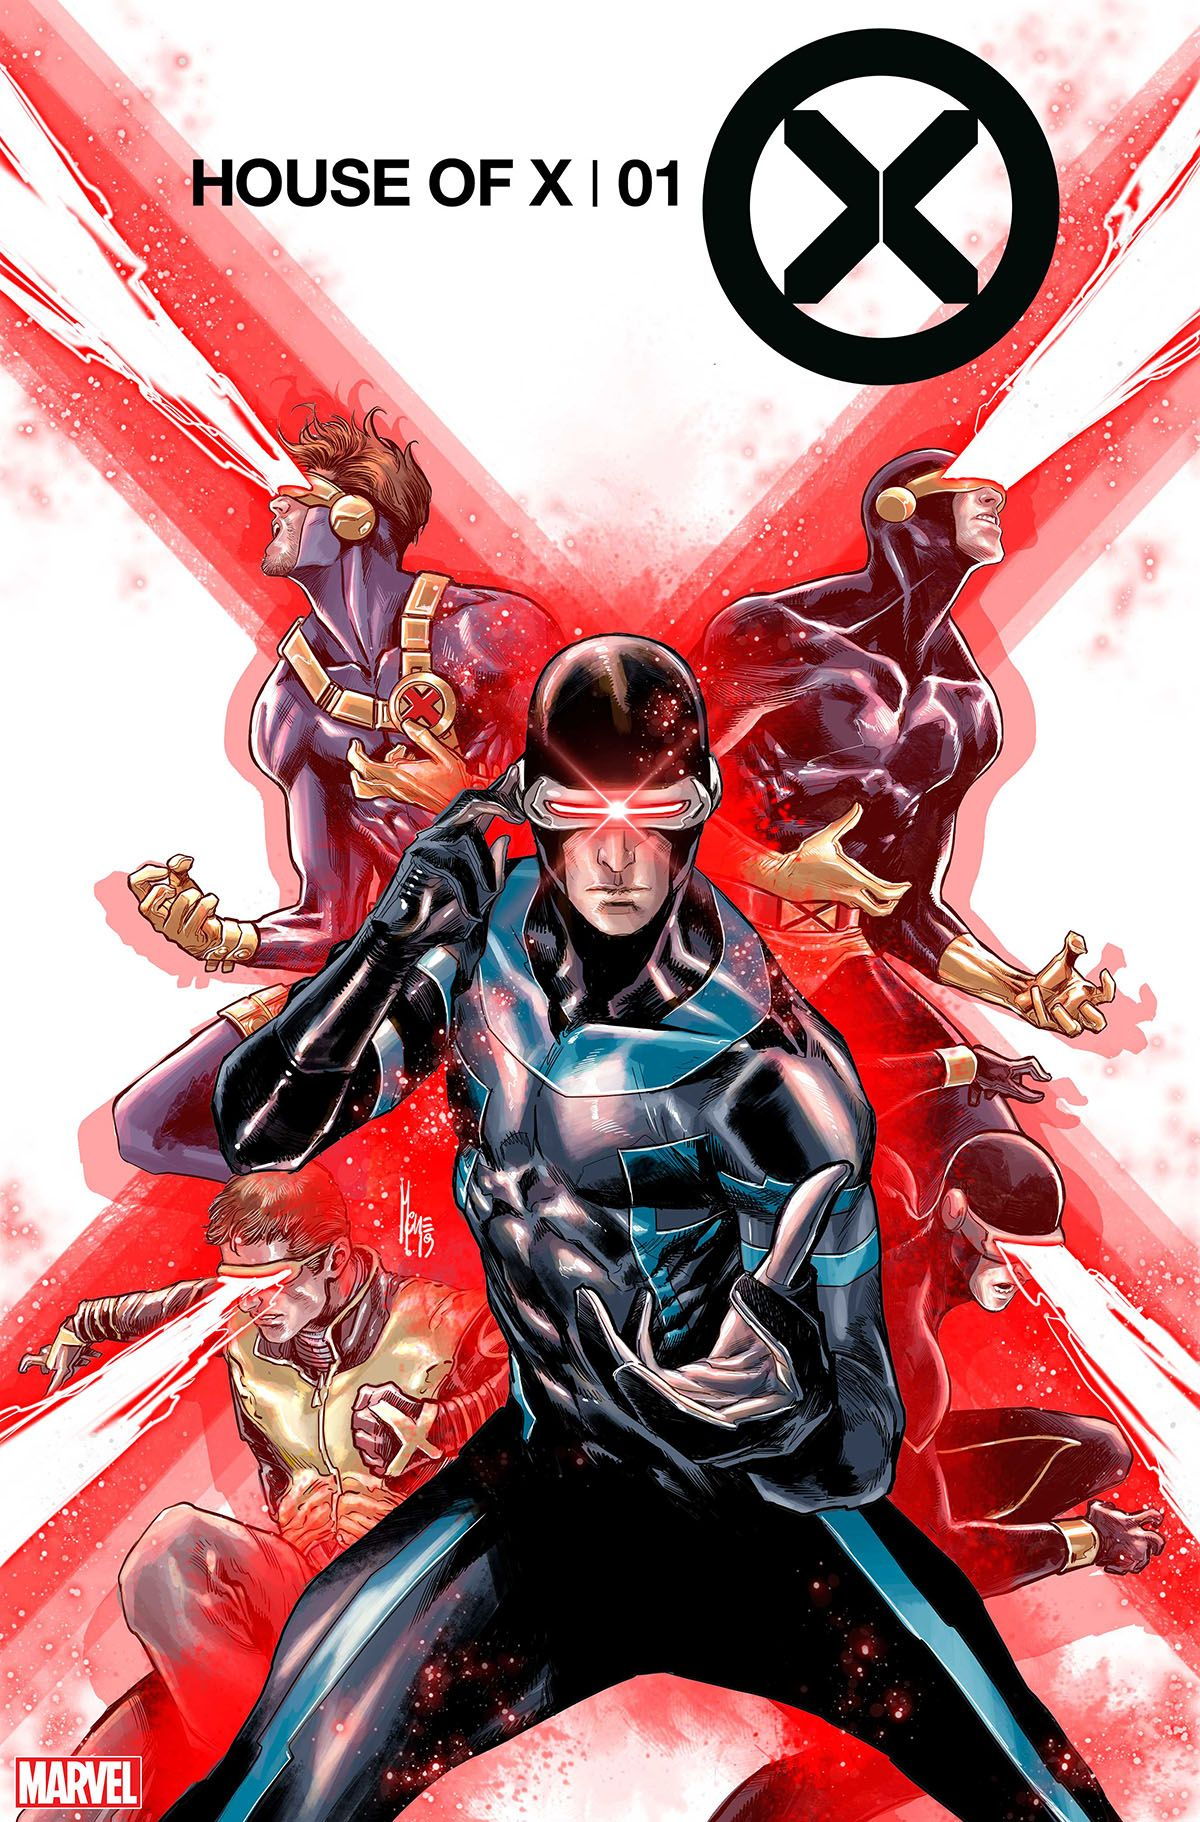 Things Are Going To Change Drastically For The X Men This Summer As Jonathan Hickman Takes Over The X Men Ti Marvel Comics Art Cyclops Marvel Comic Book Genres